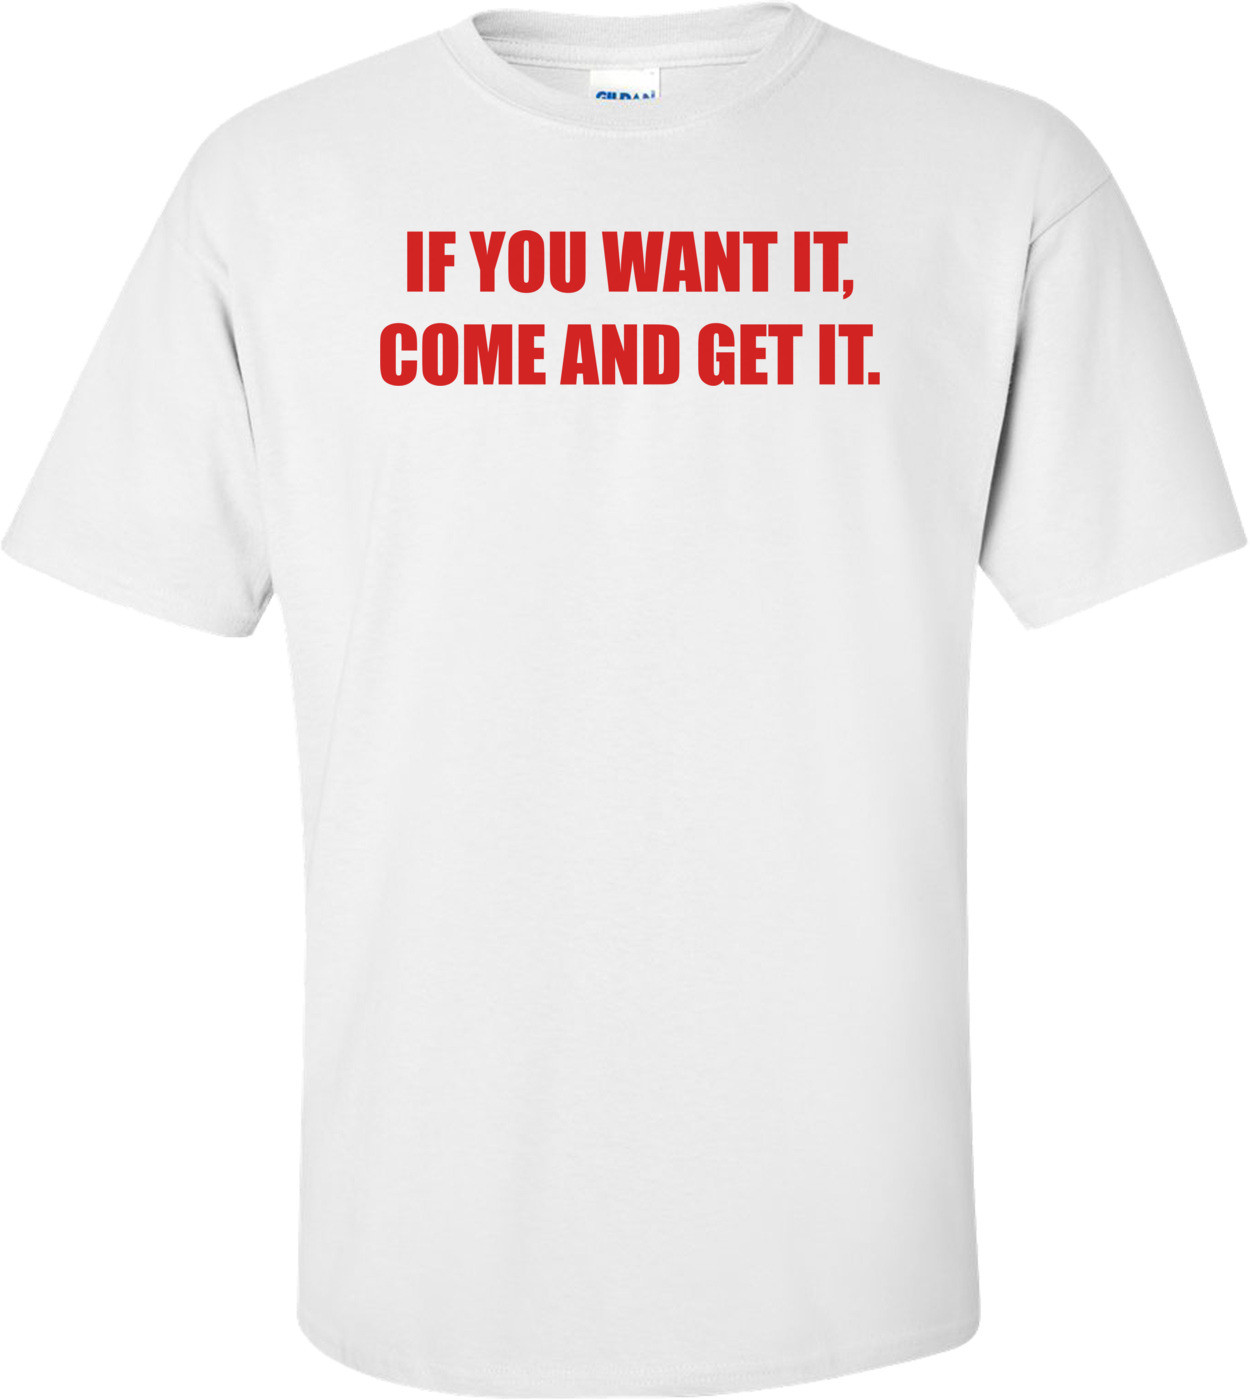 IF YOU WANT IT, COME AND GET IT. Shirt